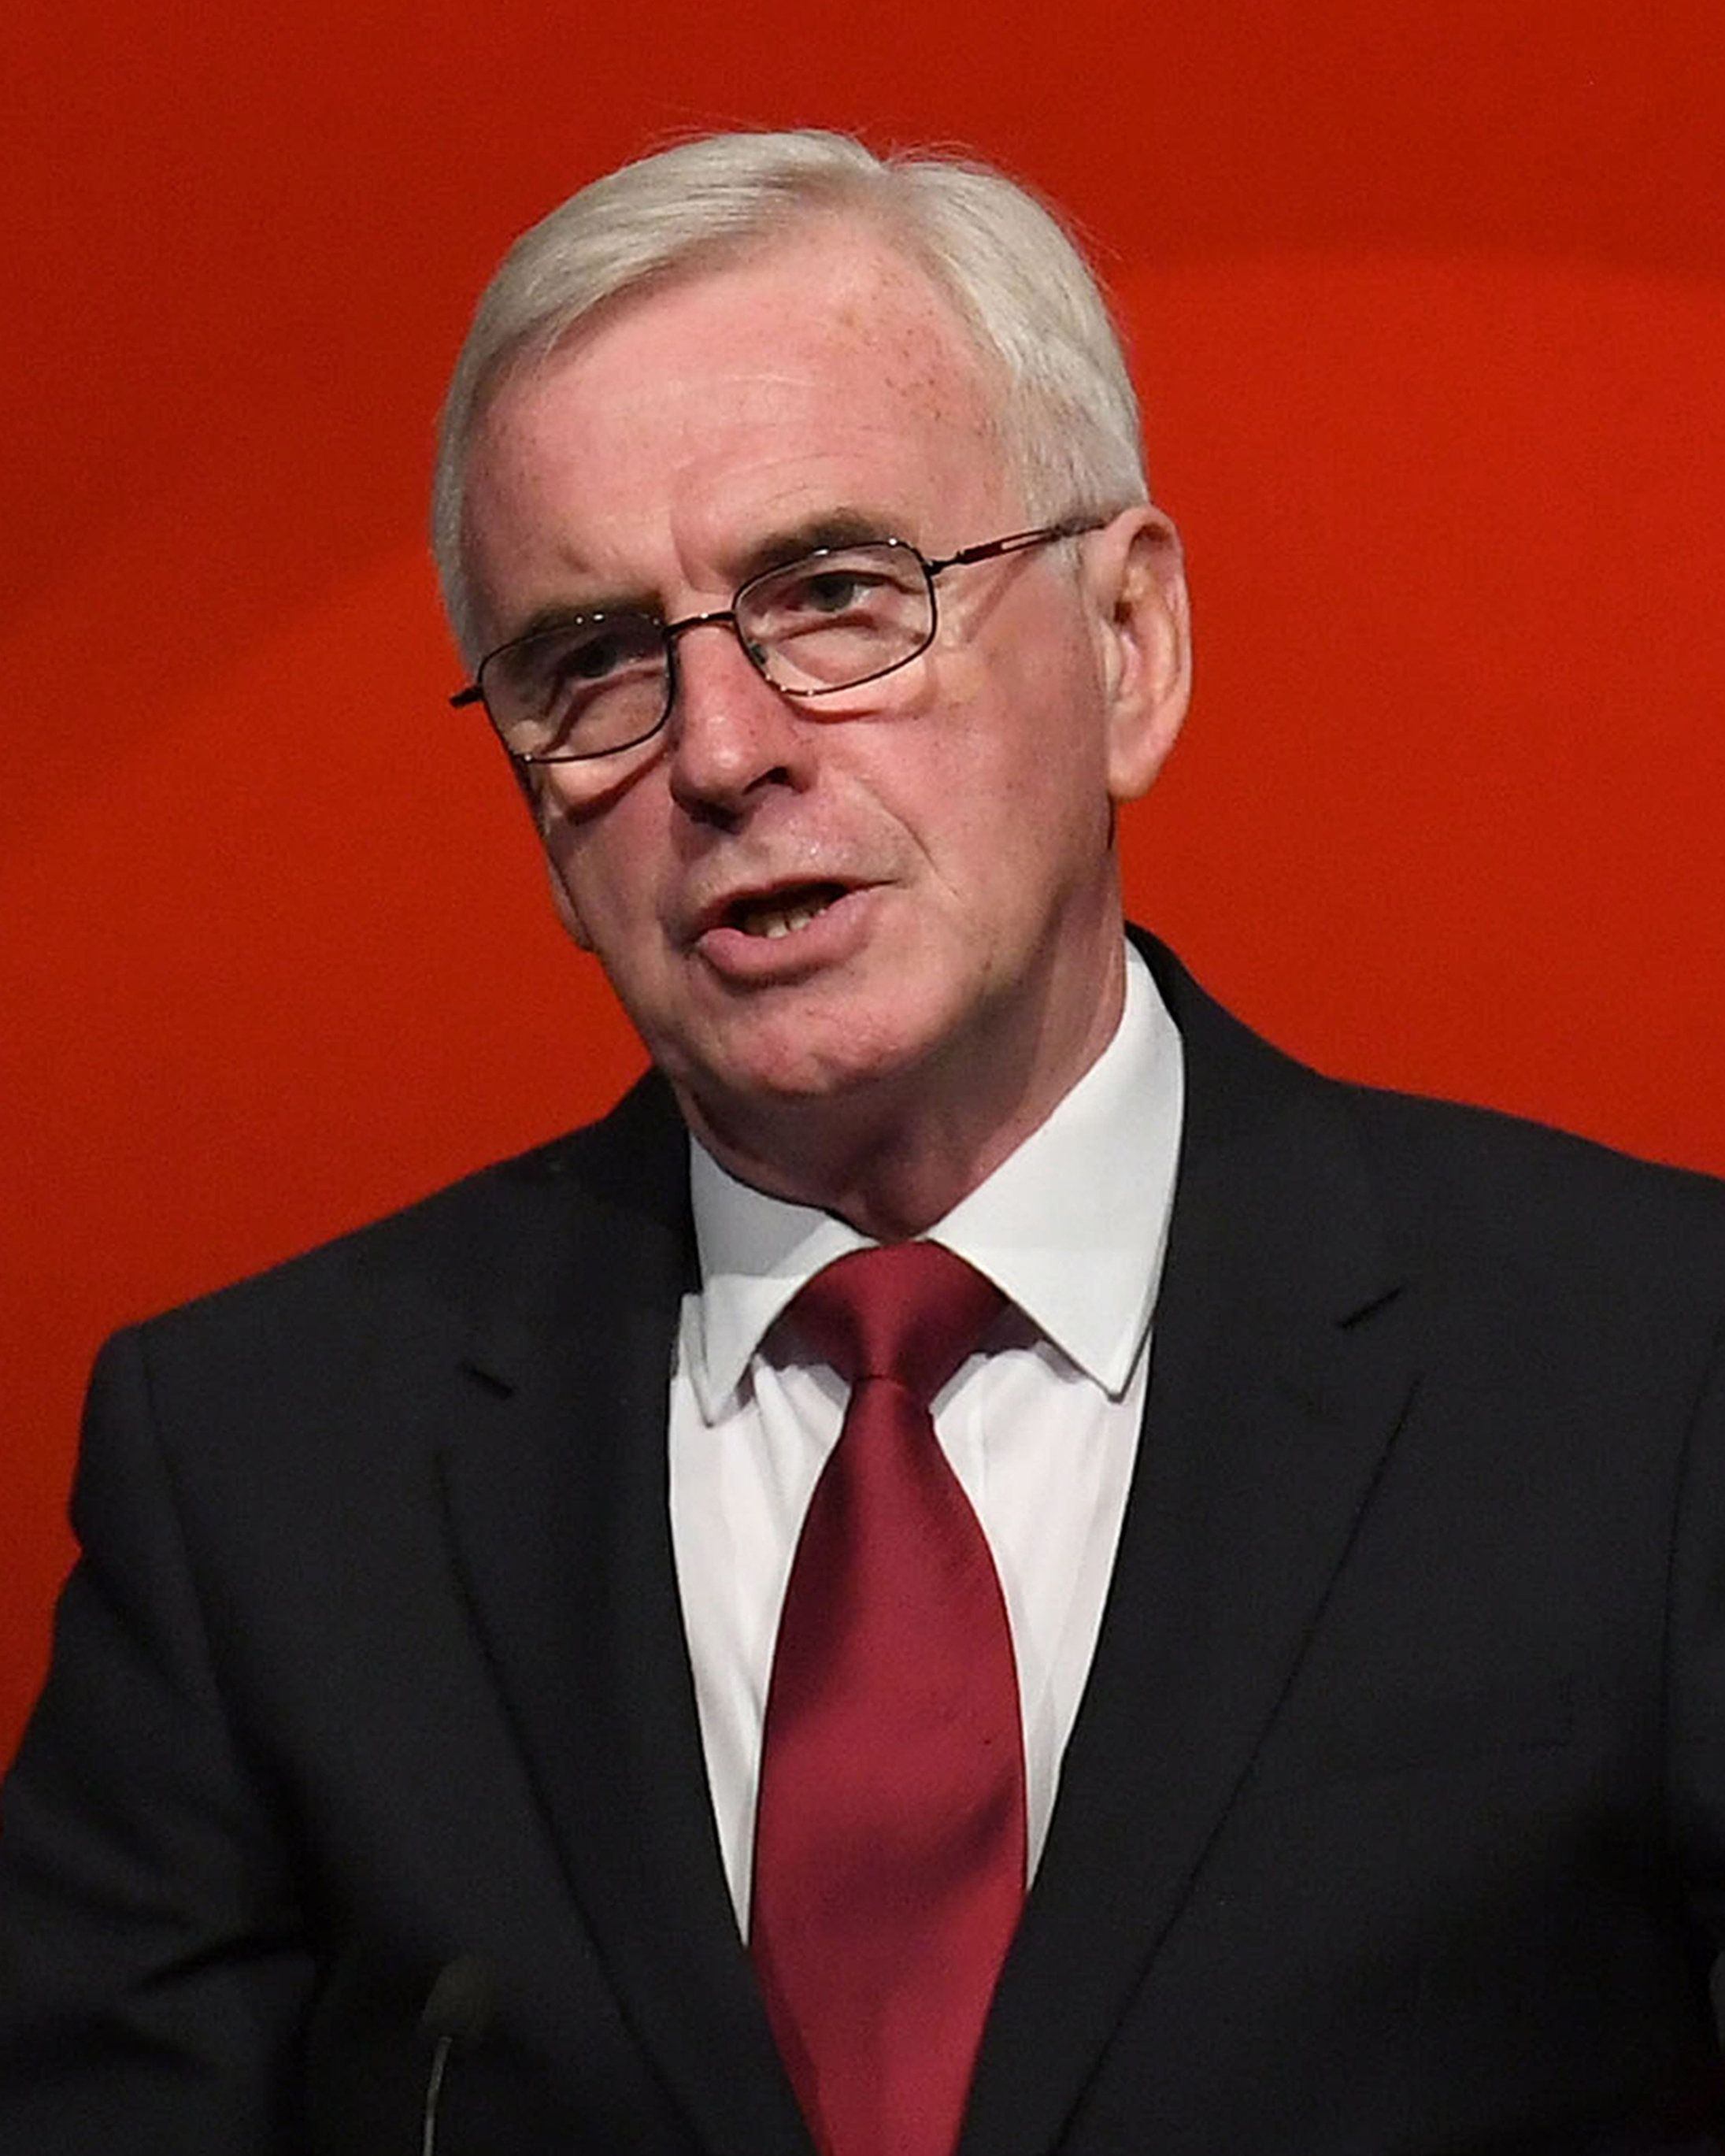 Labour 'Moving Towards' Backing A Second Brexit Referendum, Says John